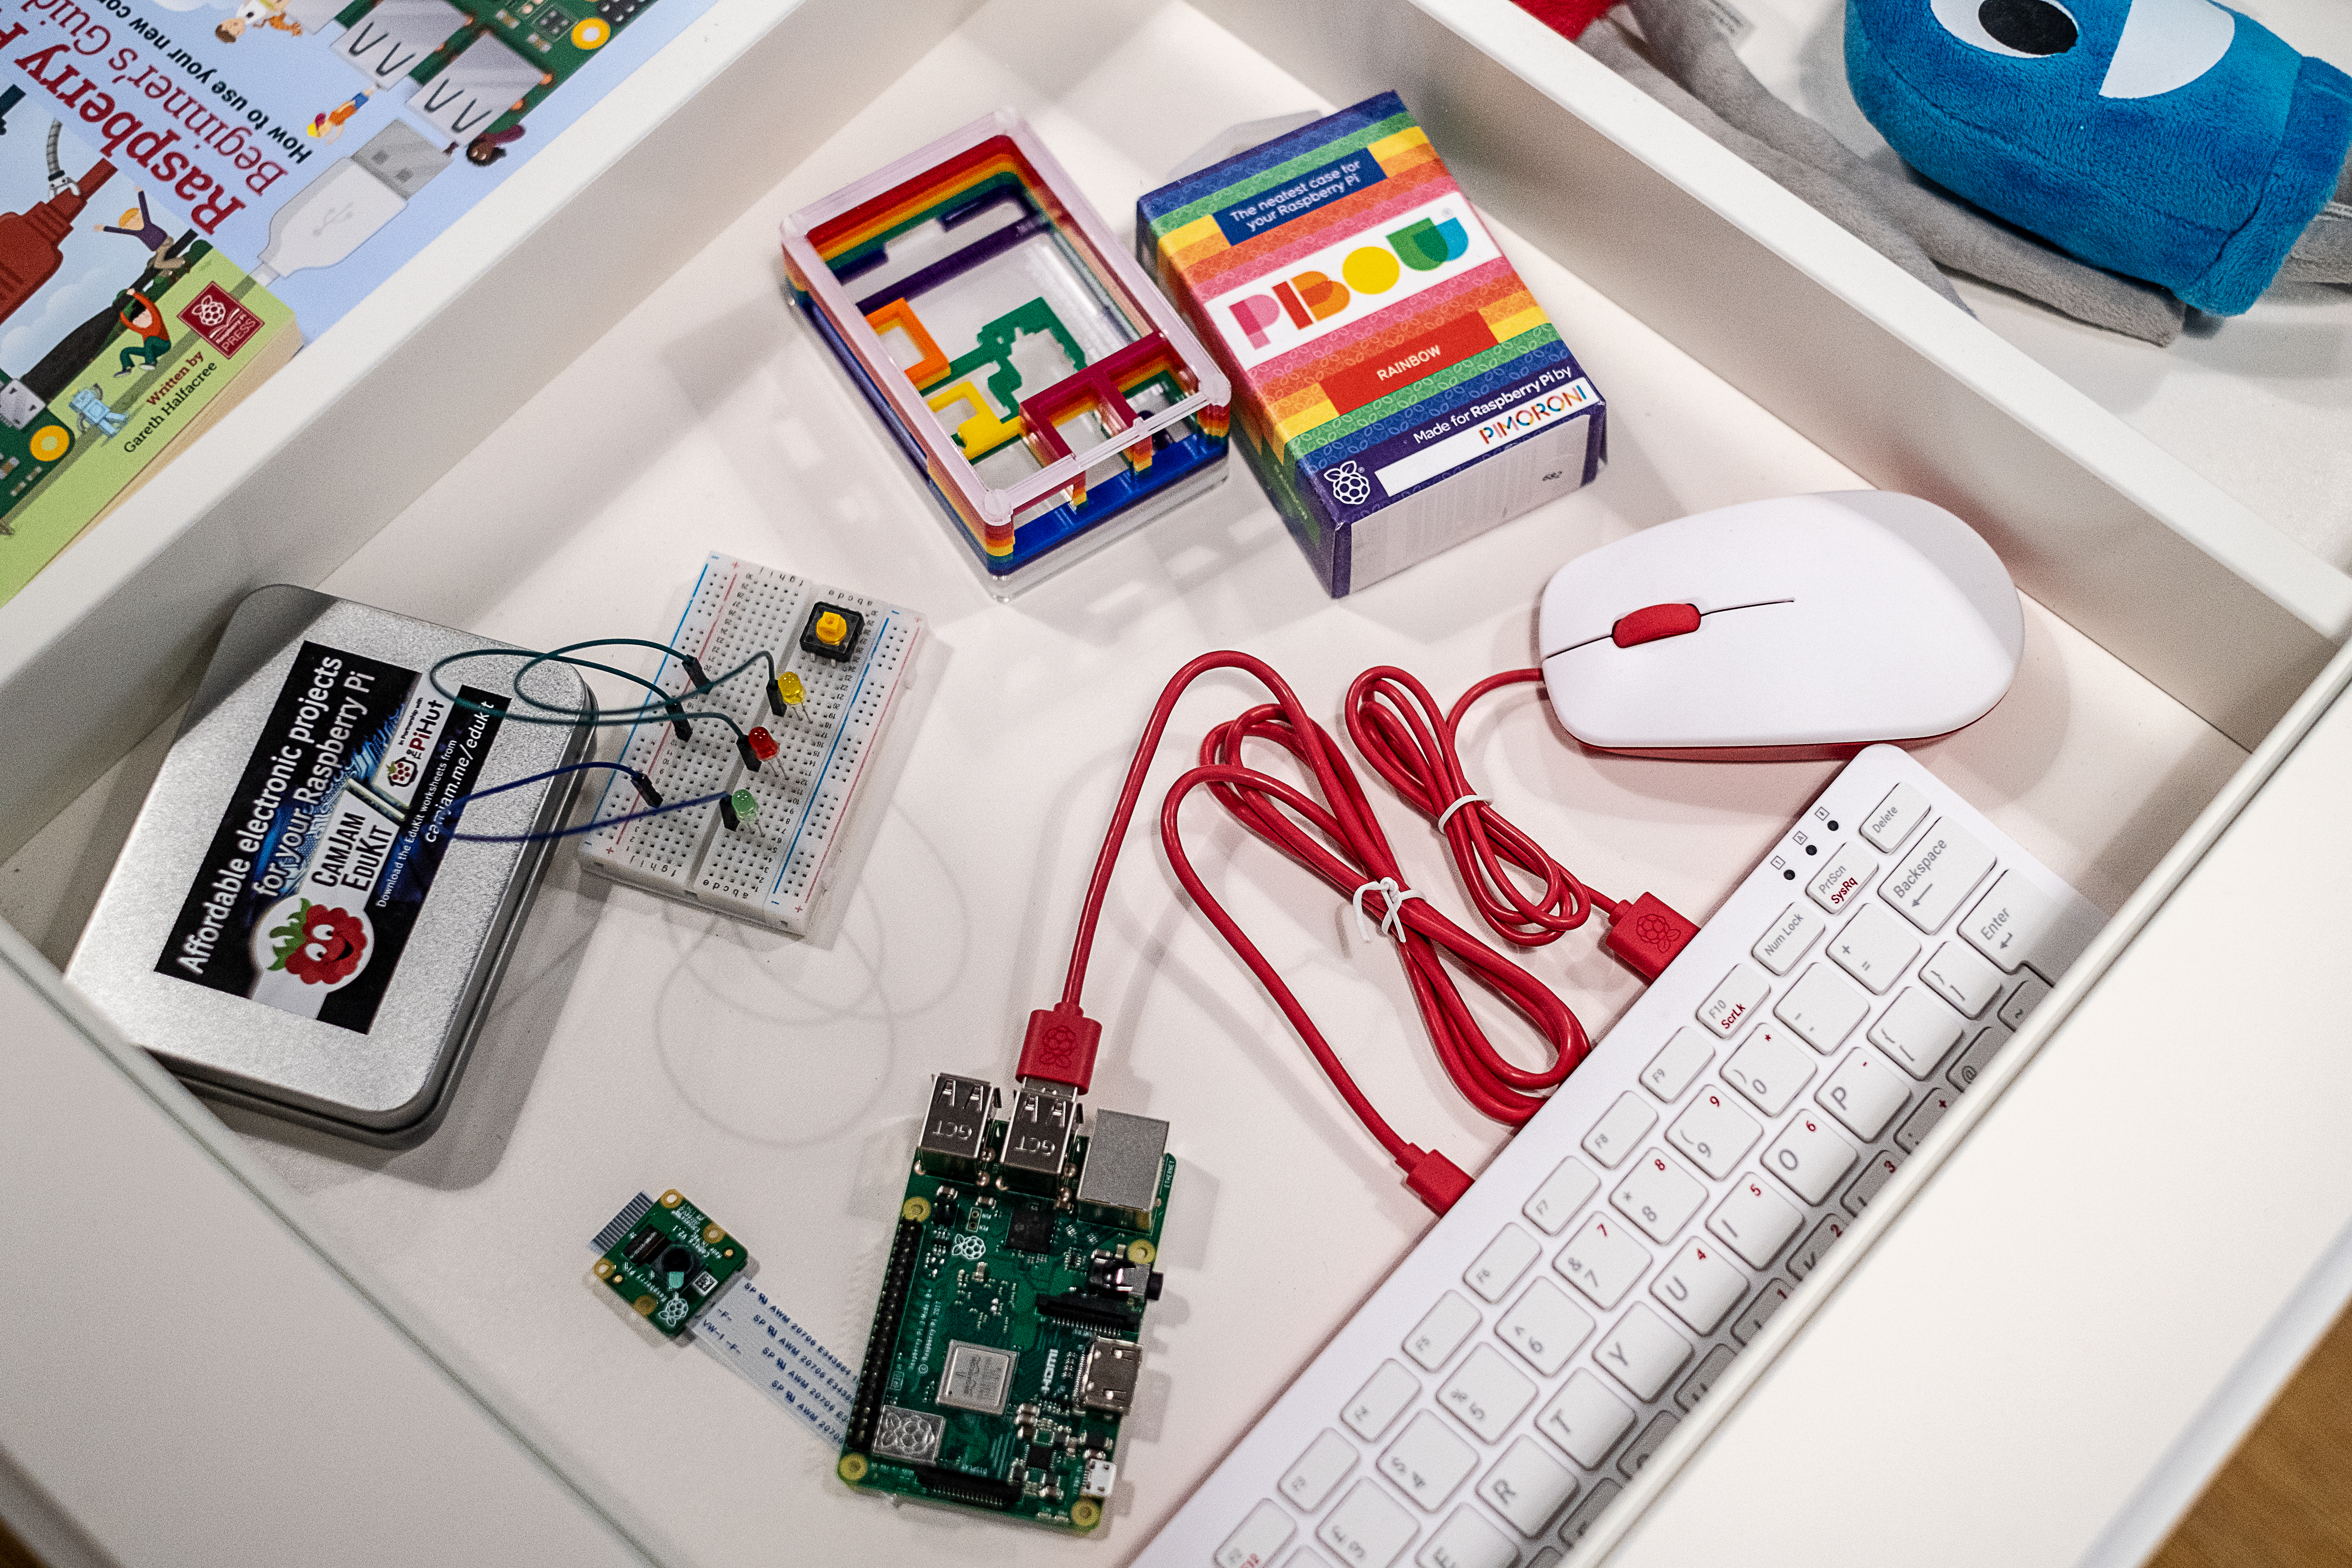 The Raspberry Pi store is much cooler than an Apple Store